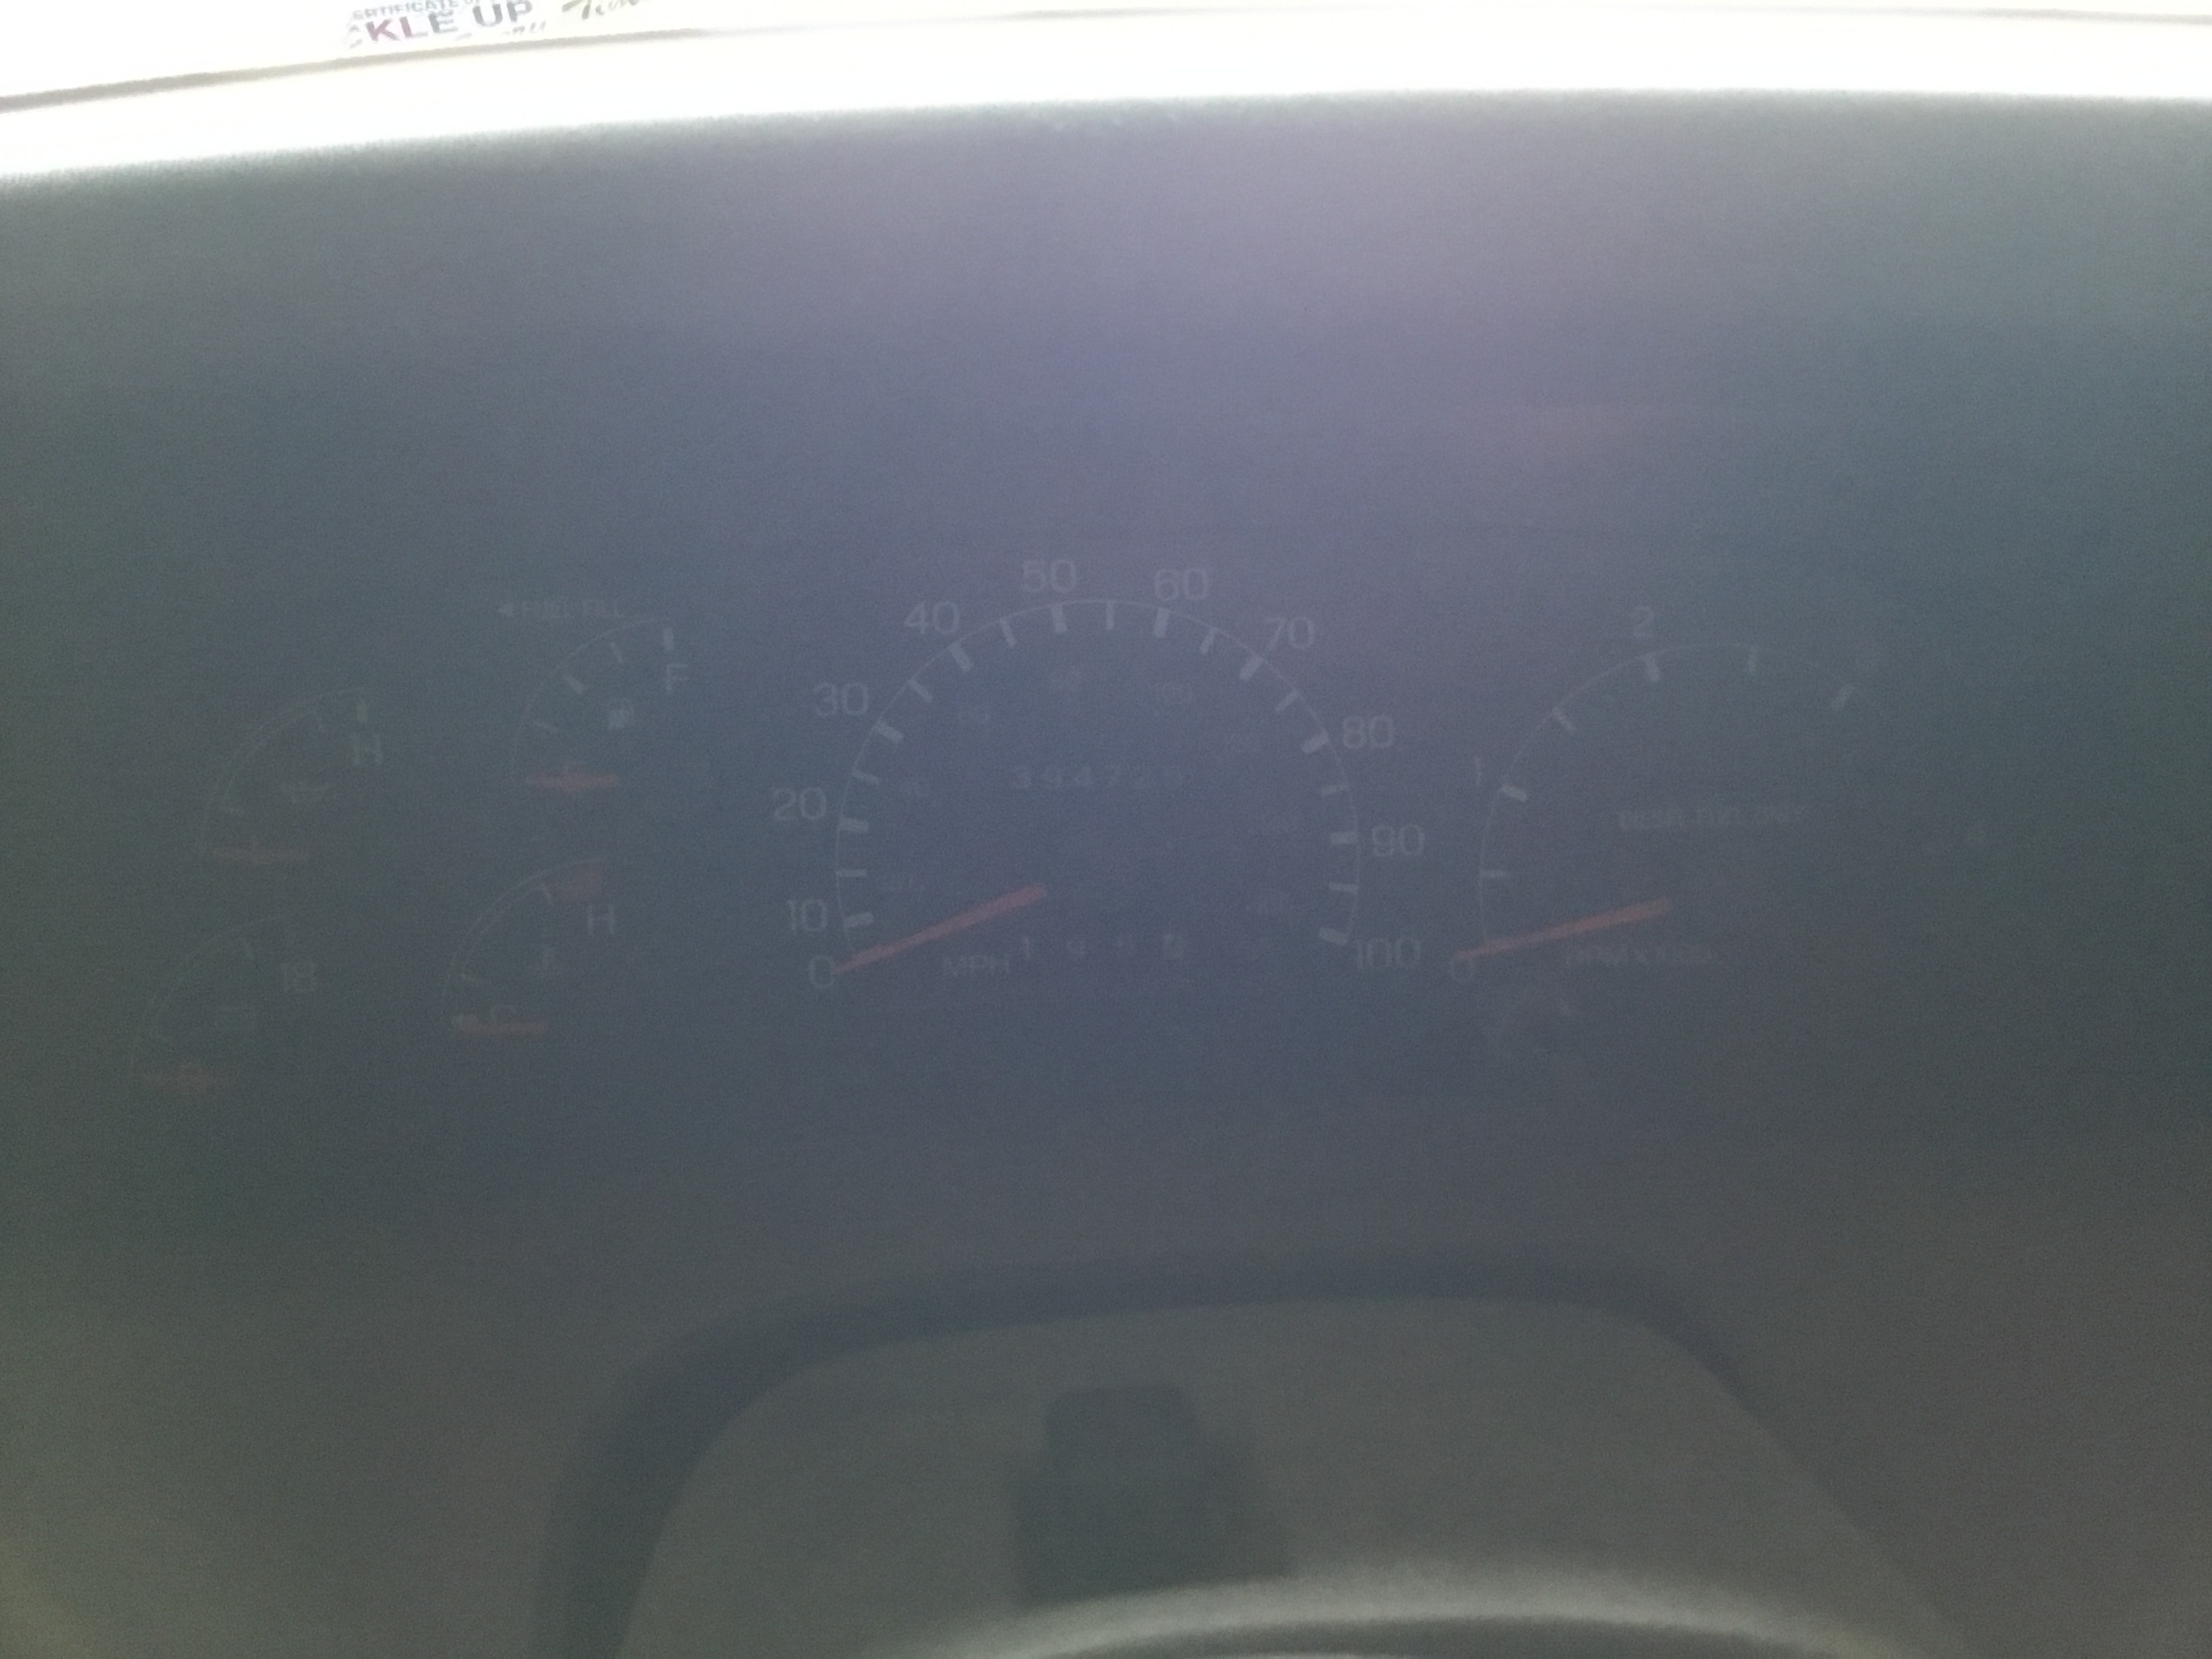 1999 Ford F-250 Lariat Extended Cab, 7.3 Power Stroke Diesel, 4x4, Cab&Chasis, Vin 1FTNX21FOXEB72445 - Image 4 of 13